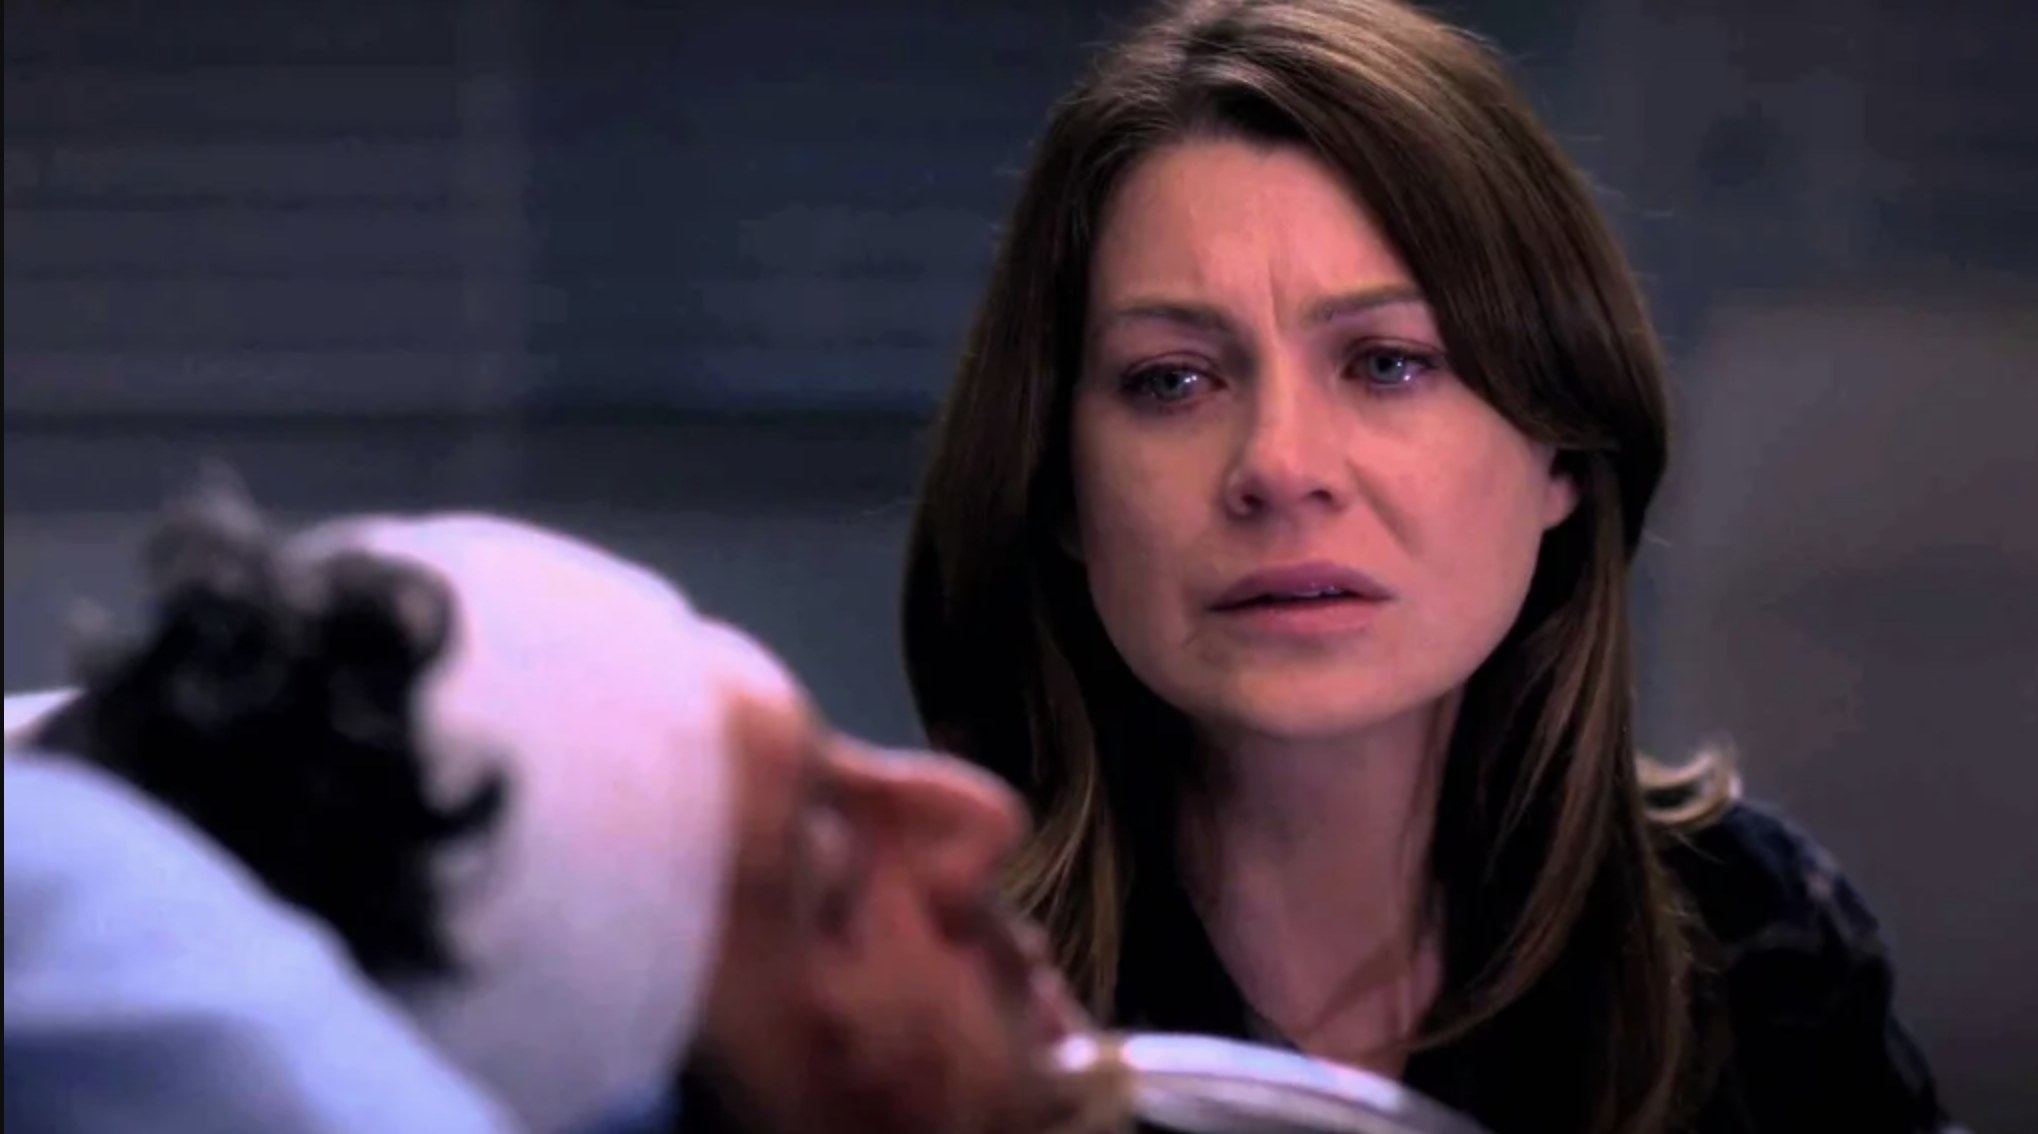 Meredith saying goodbye to Derek before she has them unplug him.